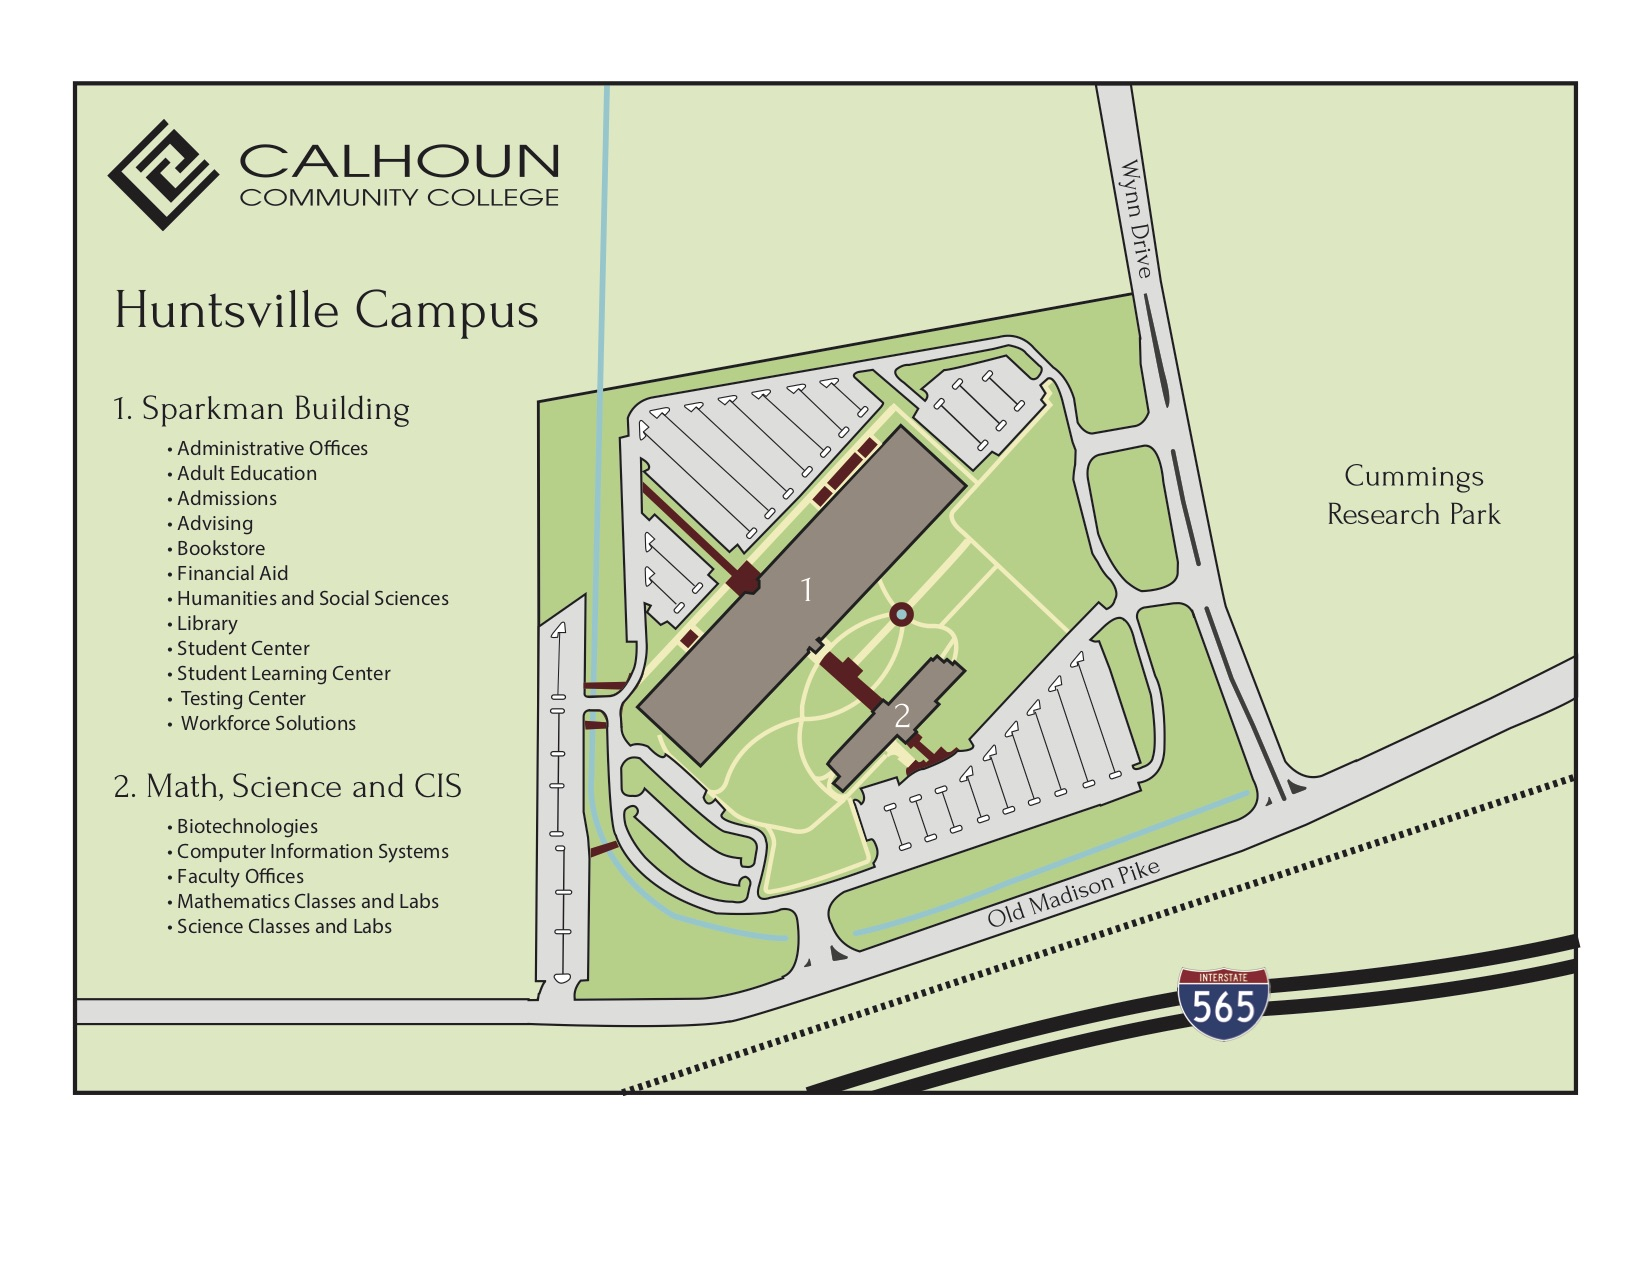 Campus Maps | Calhoun Community College on map of sardis alabama, map of tyler alabama, map of louisiana alabama, map of cahawba alabama, map of hayneville alabama, large map of alabama, map texas alabama, map of silverhill alabama, map of phoenix alabama, map of fort deposit alabama, map of eclectic alabama, map of gardendale alabama, map of north alabama, map of hazel green alabama, map of georgia and alabama, map of sand rock alabama, map of alabama cities and towns, map of vestavia hills alabama, map of marshall alabama, map of creola alabama,